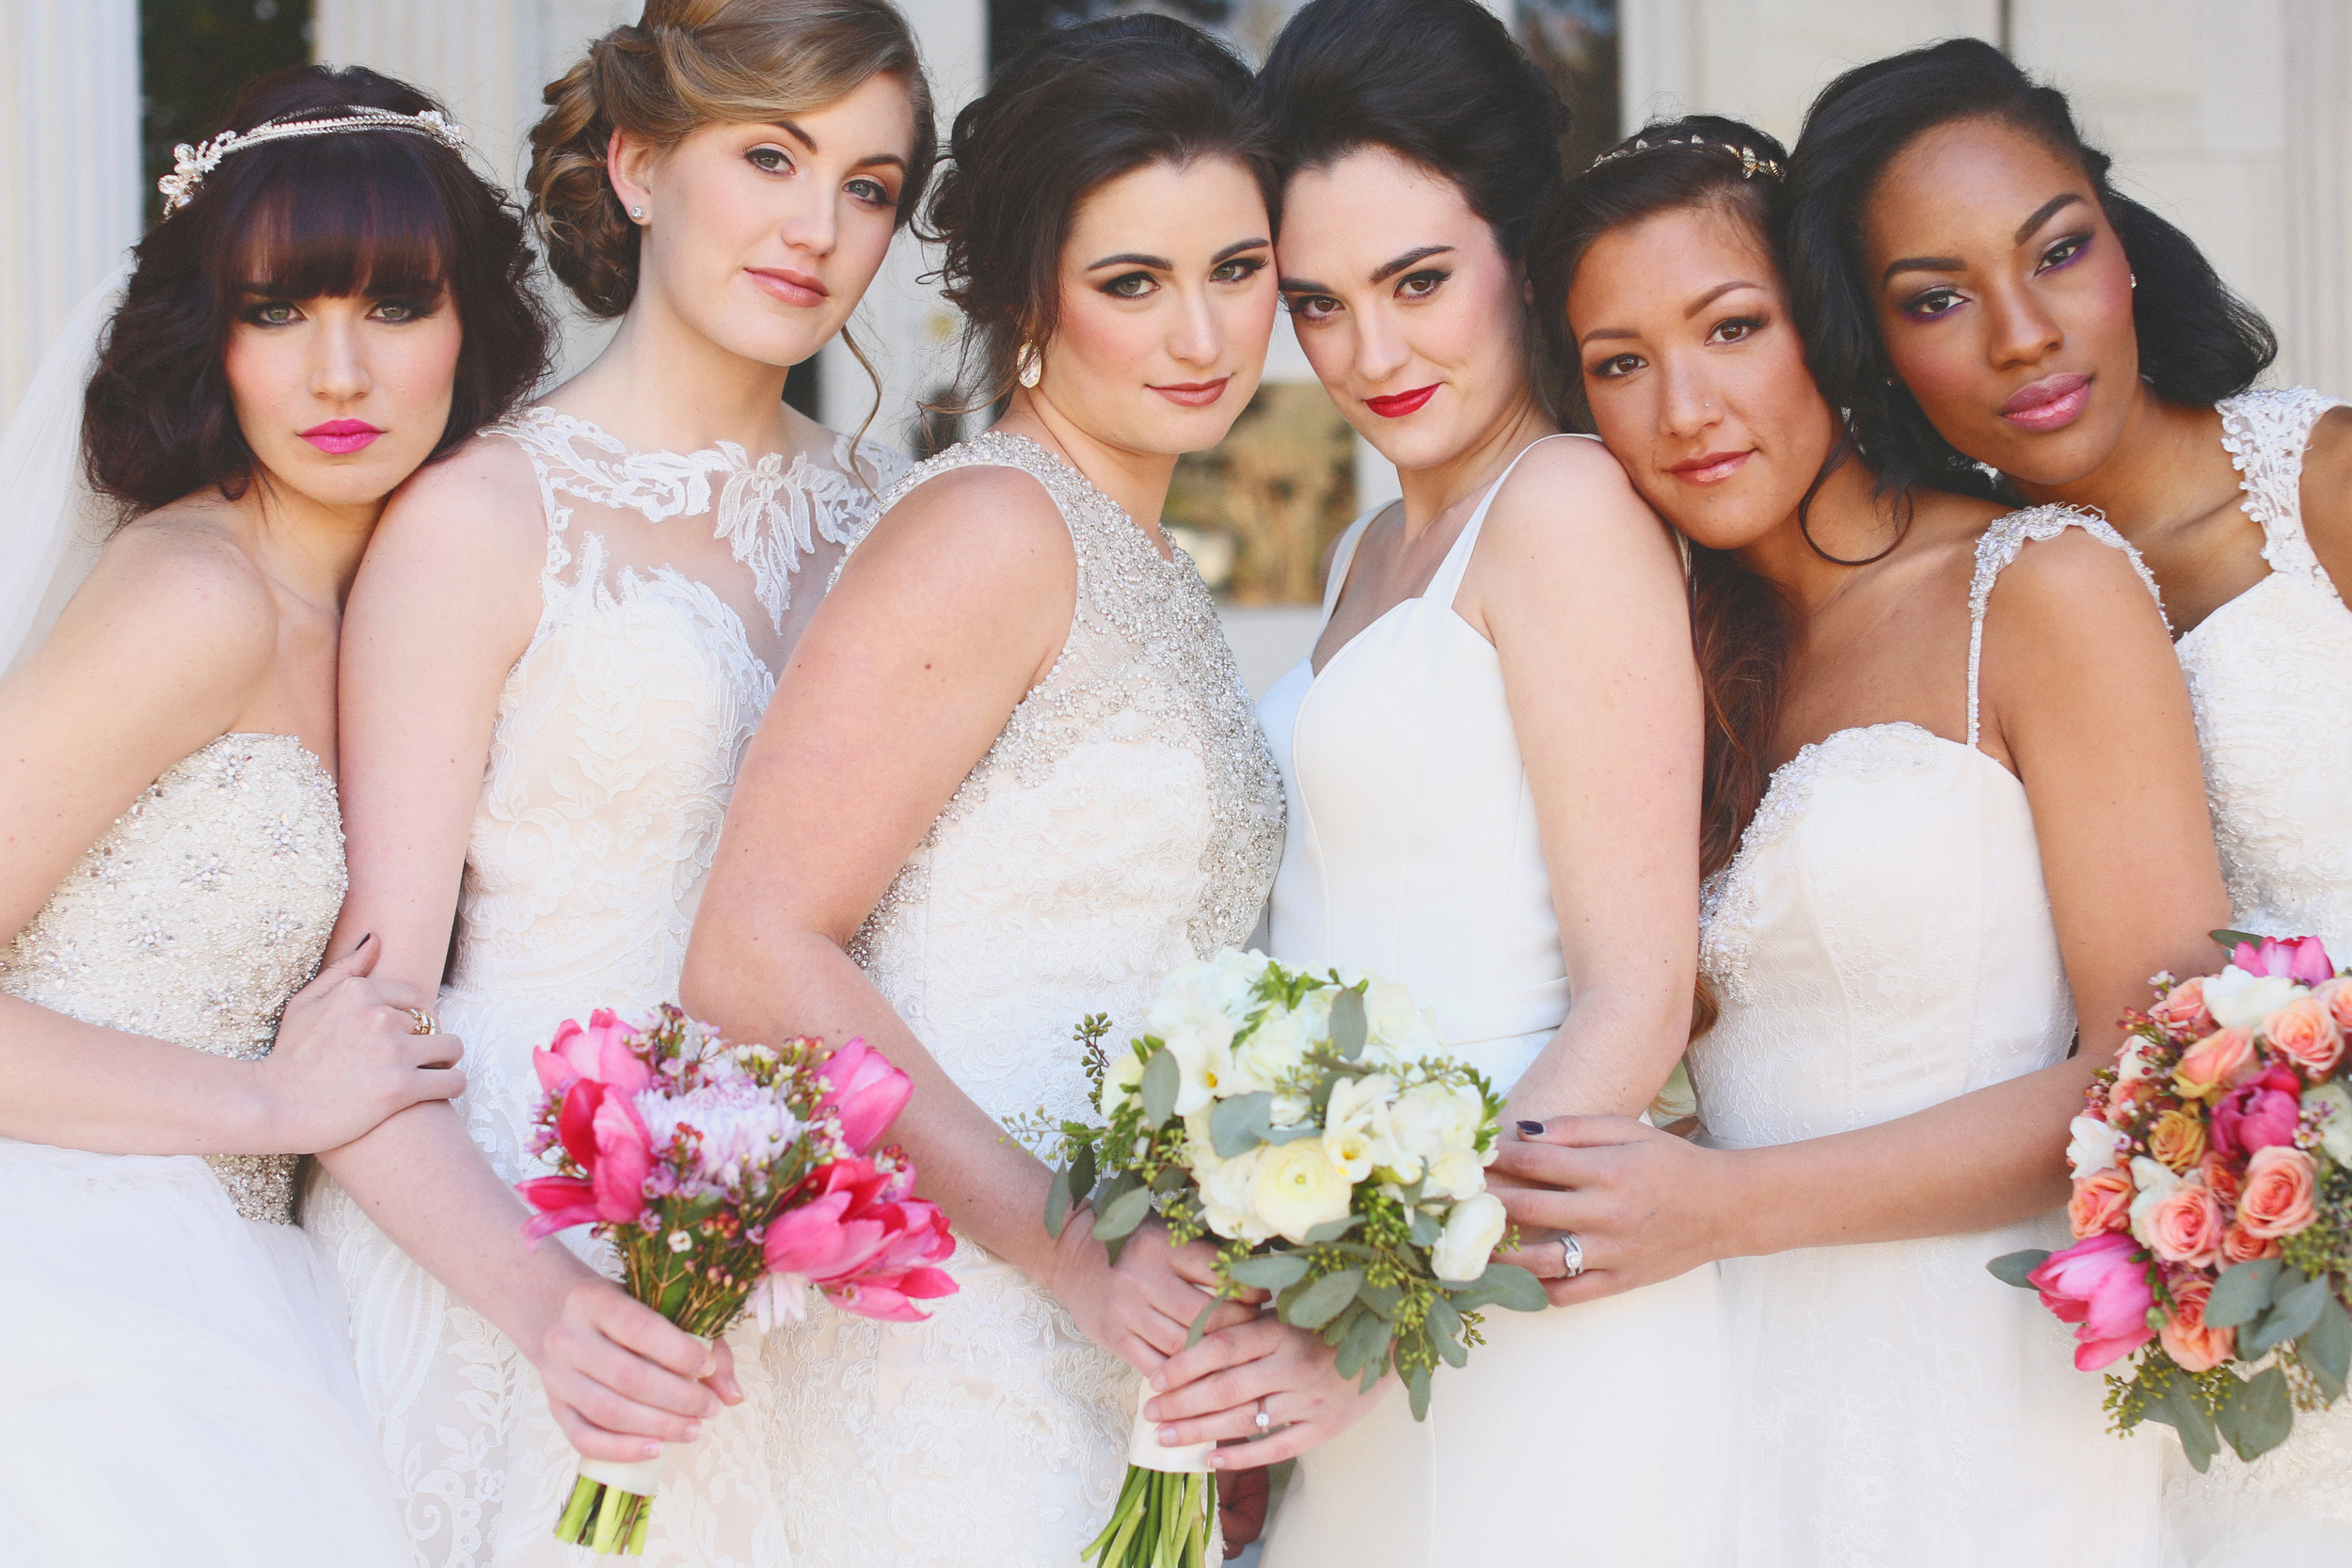 Which Bride are you?